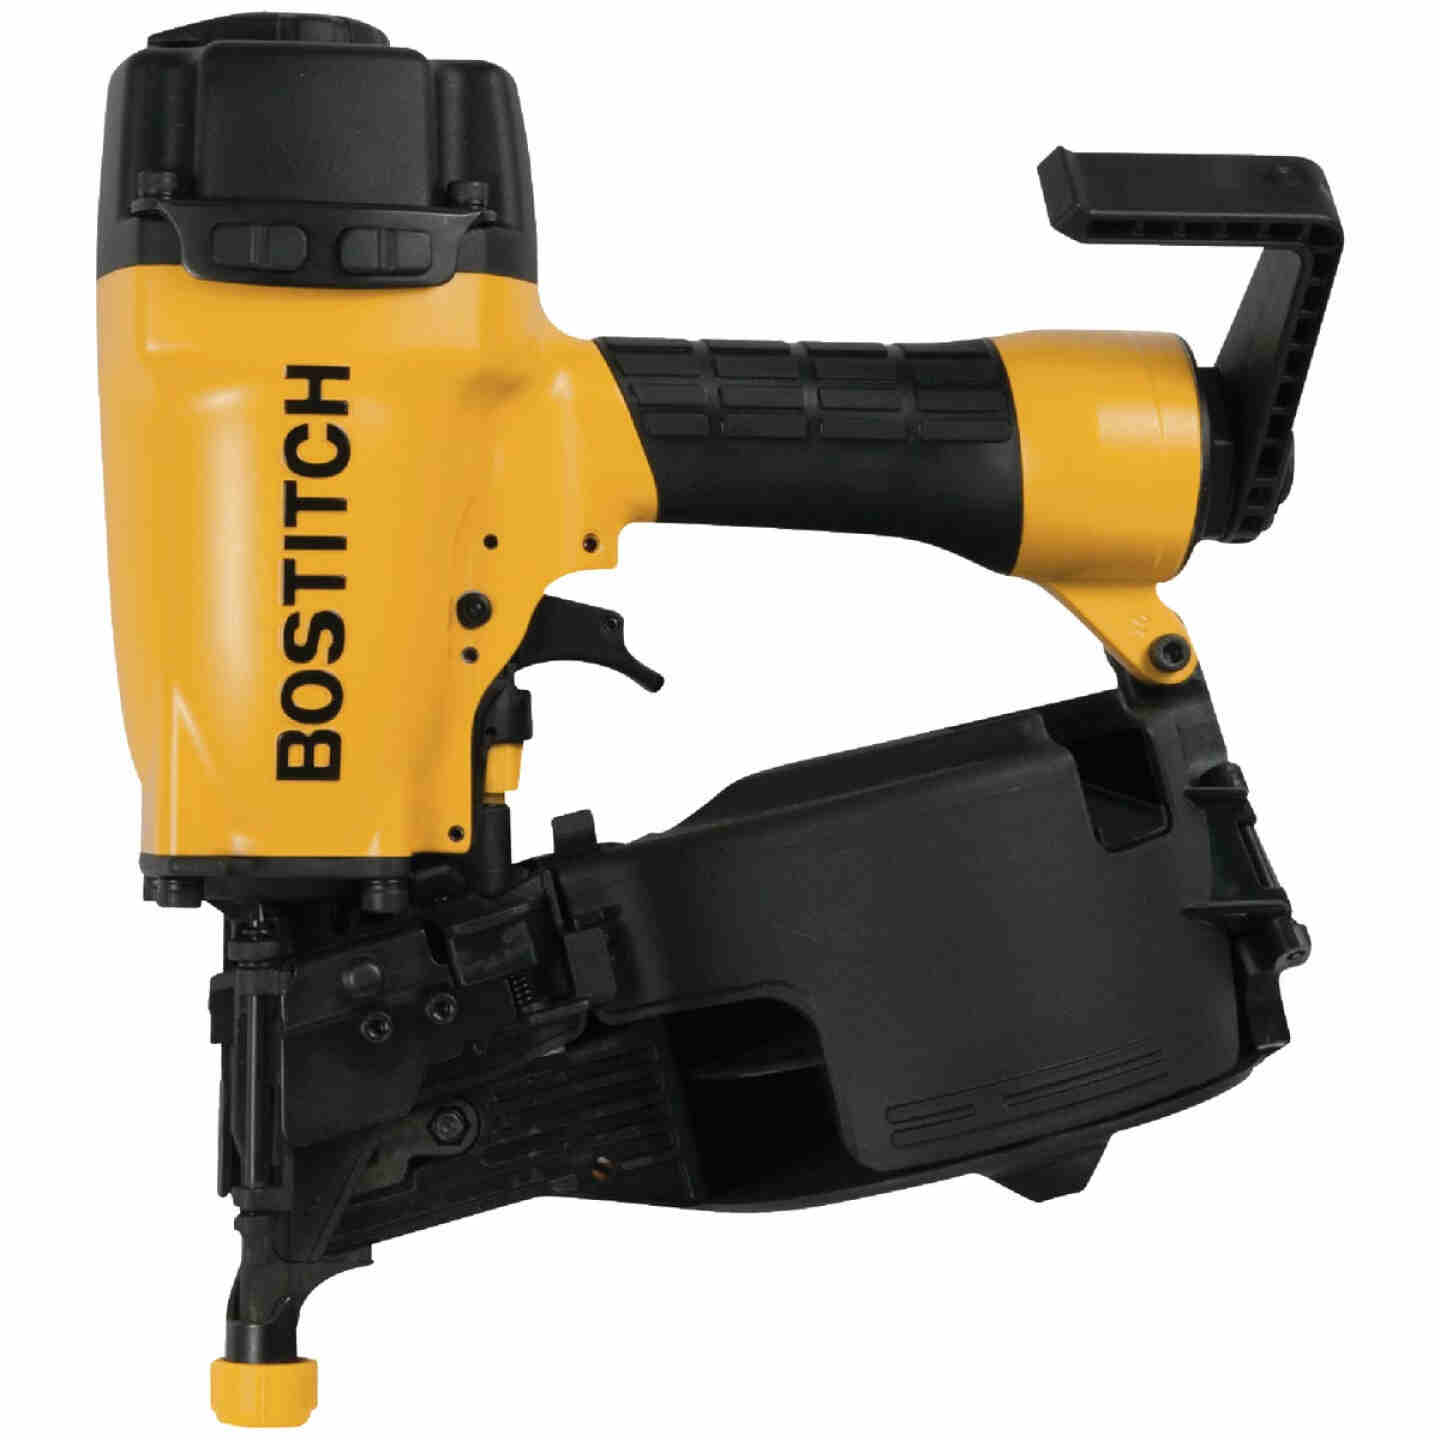 Bostitch 15 Degree 2-1/2 In. Coil Siding Nailer Image 1